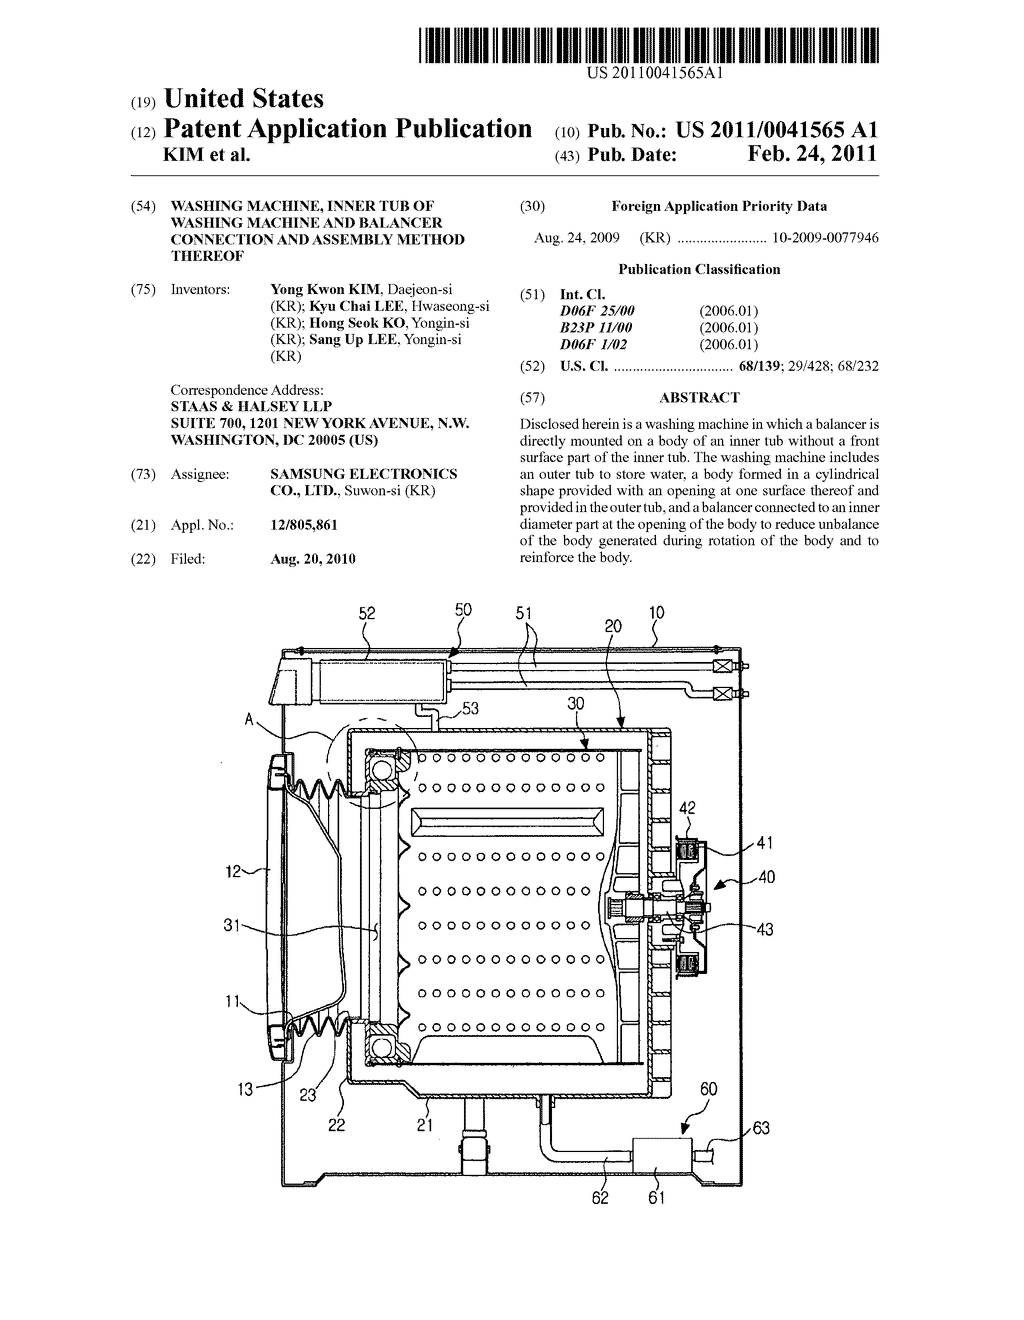 Washing Machine Inner Tub Of And Balancer Wiring Diagram Schematics Connection Assembly Method Thereof Schematic Image 01